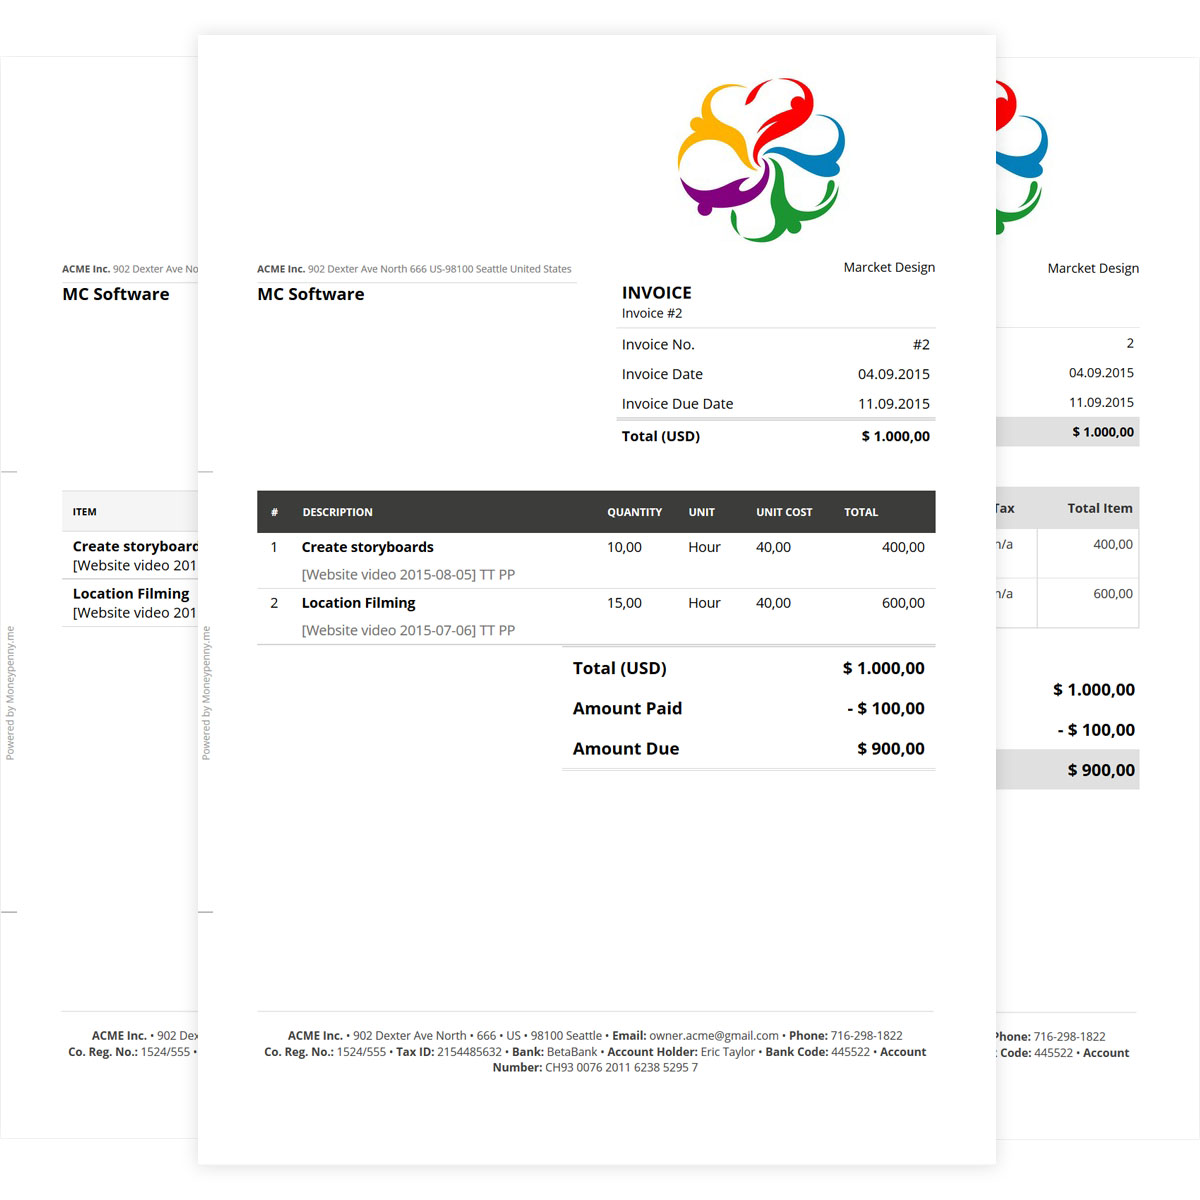 Invoice MoneyPenny Dictionary - Order invoices online